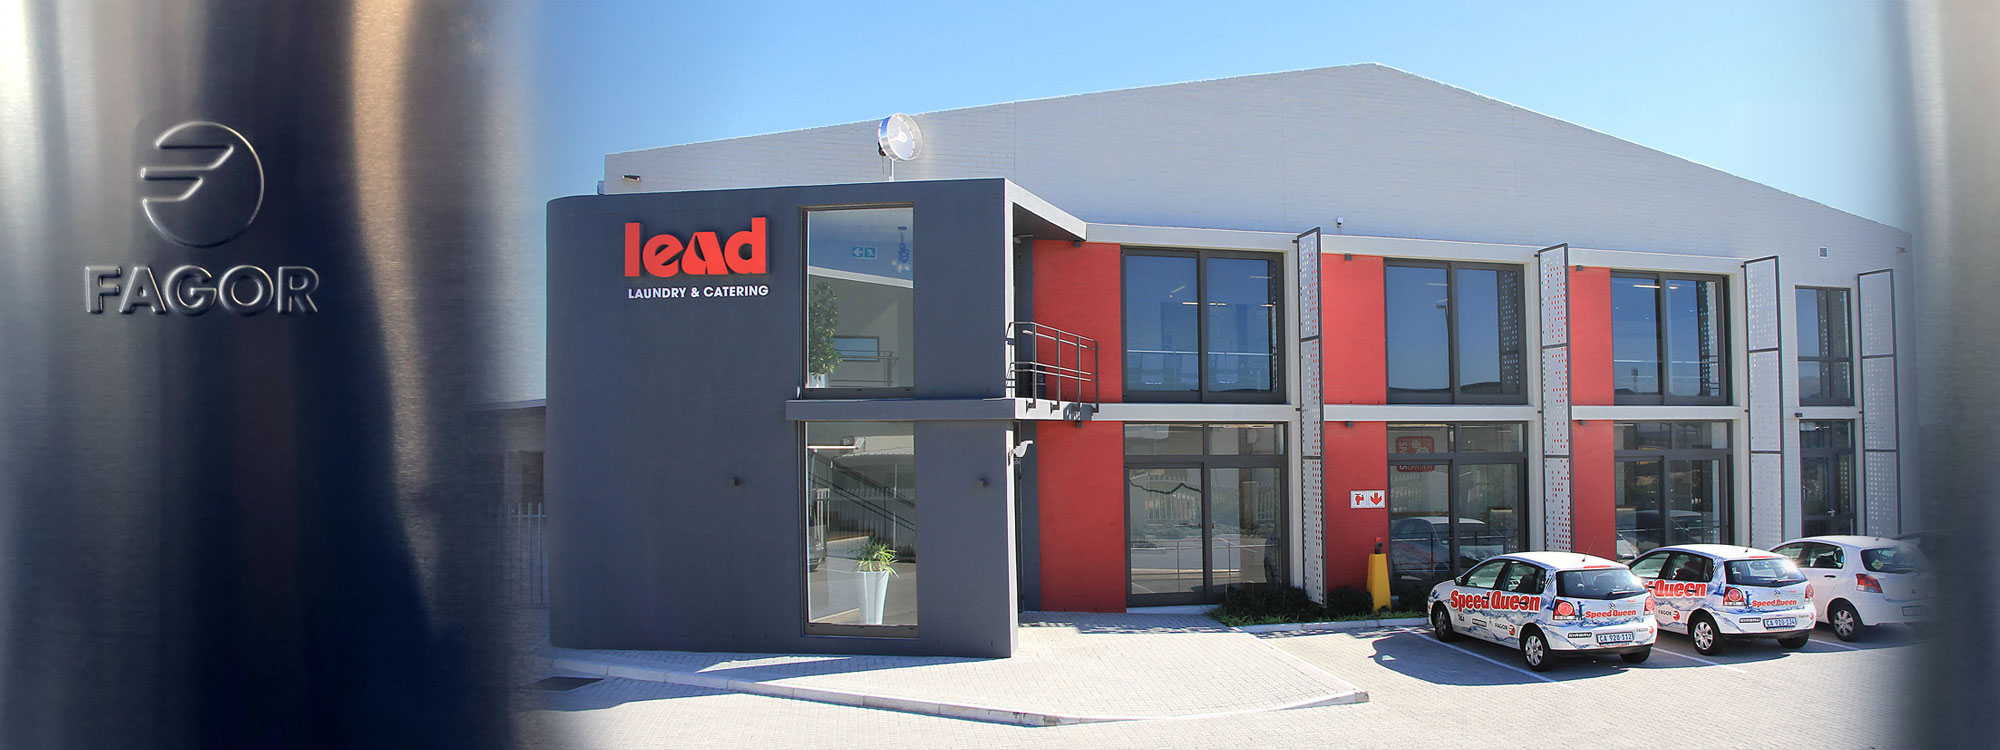 lead-laundry-catering-family-business-girbau-jenson-fagor